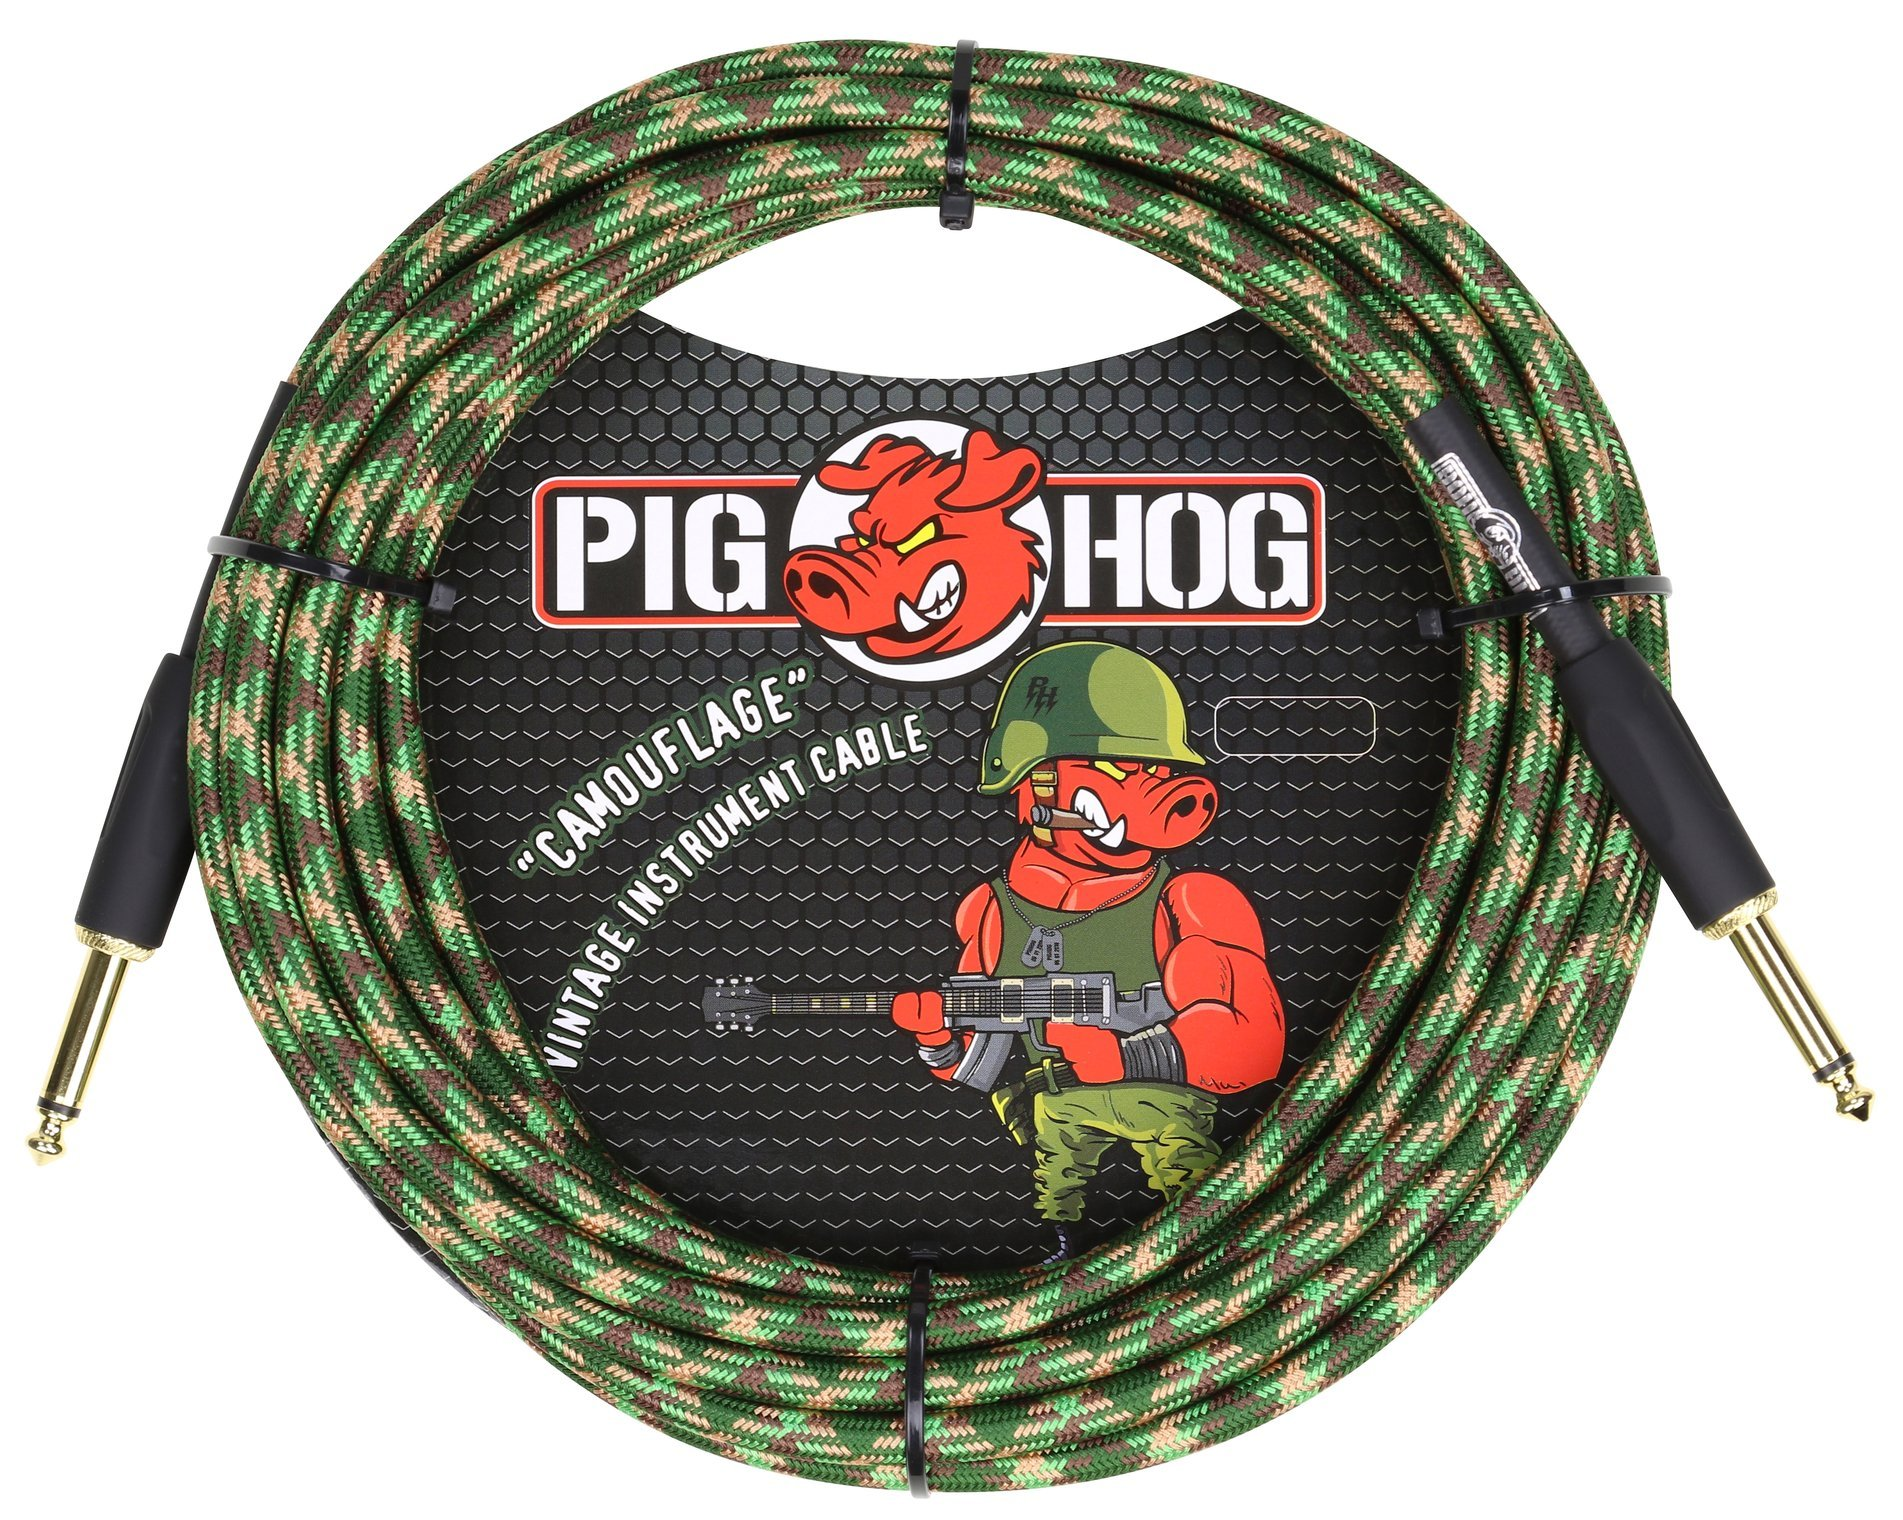 Pig Hog Camouflage Braided Instrument Cable - 20ft